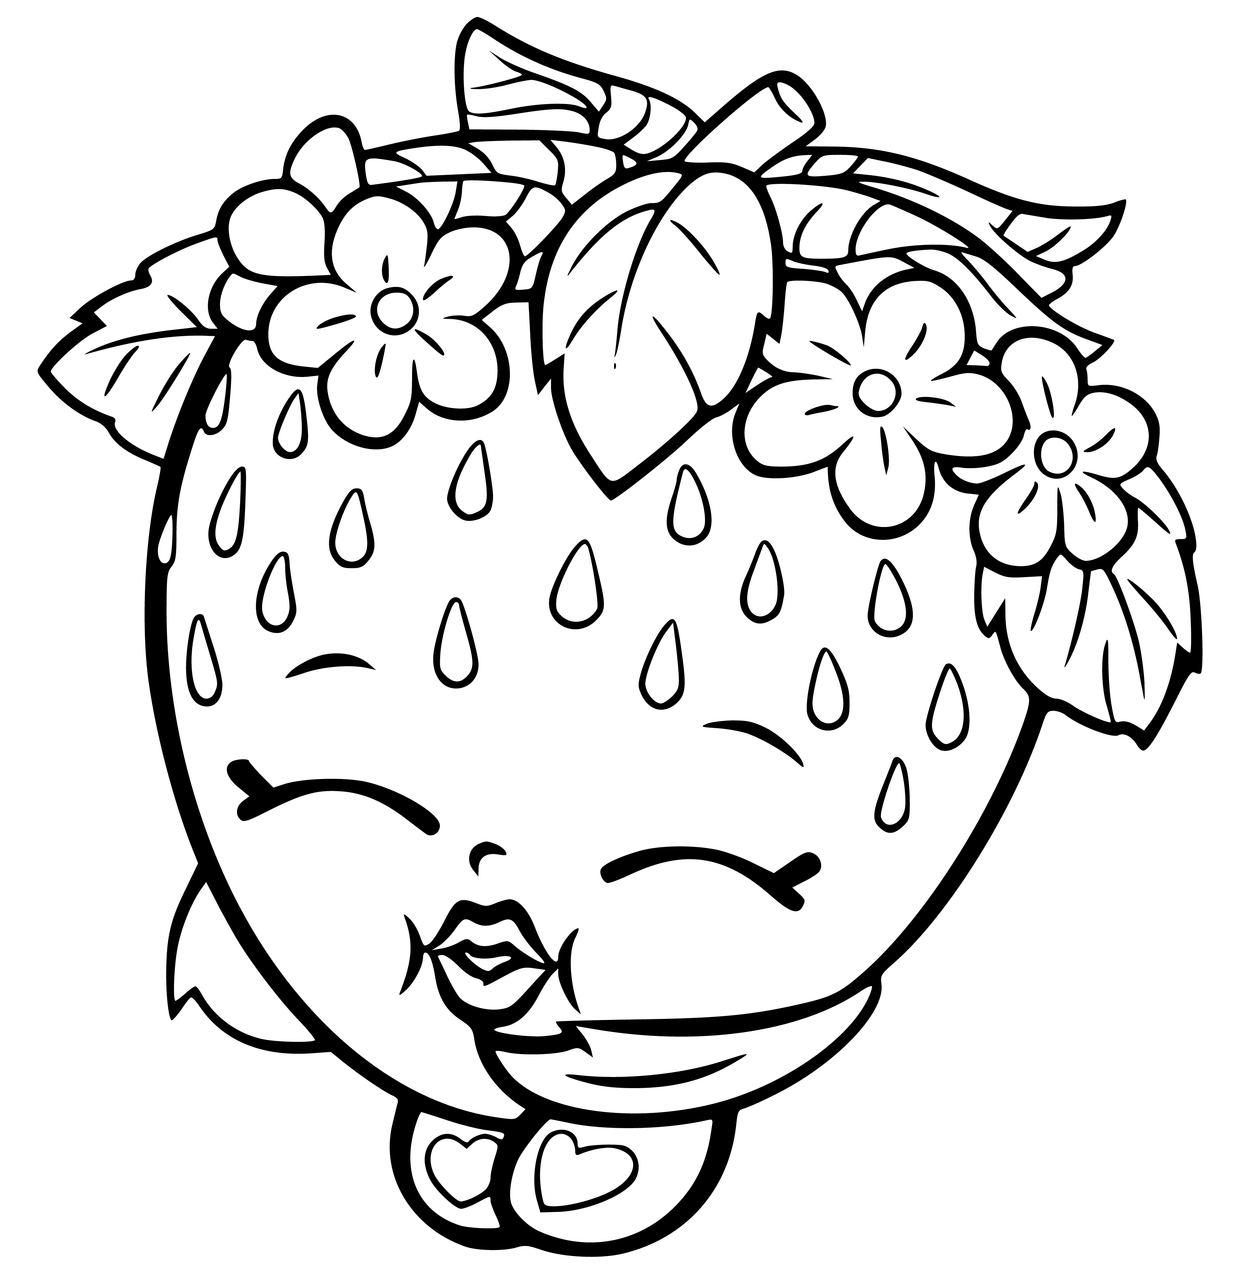 coloring pages of a - photo#15